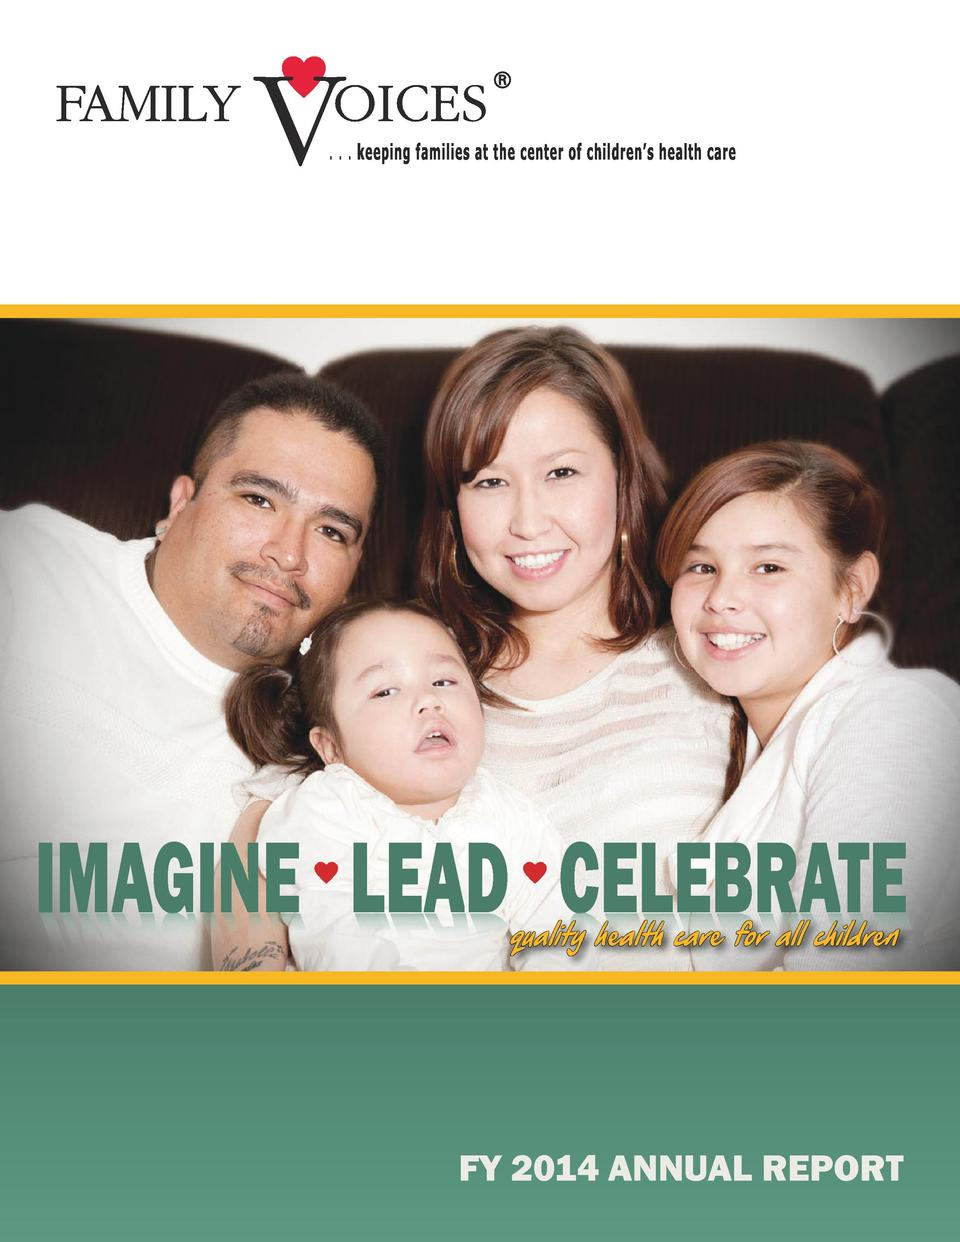 IMAGINE LEAD Celebrate  etarbeleC DAEL ENIGAMI quality health care for all children  FY 2014 ANNUAL REPORT 1